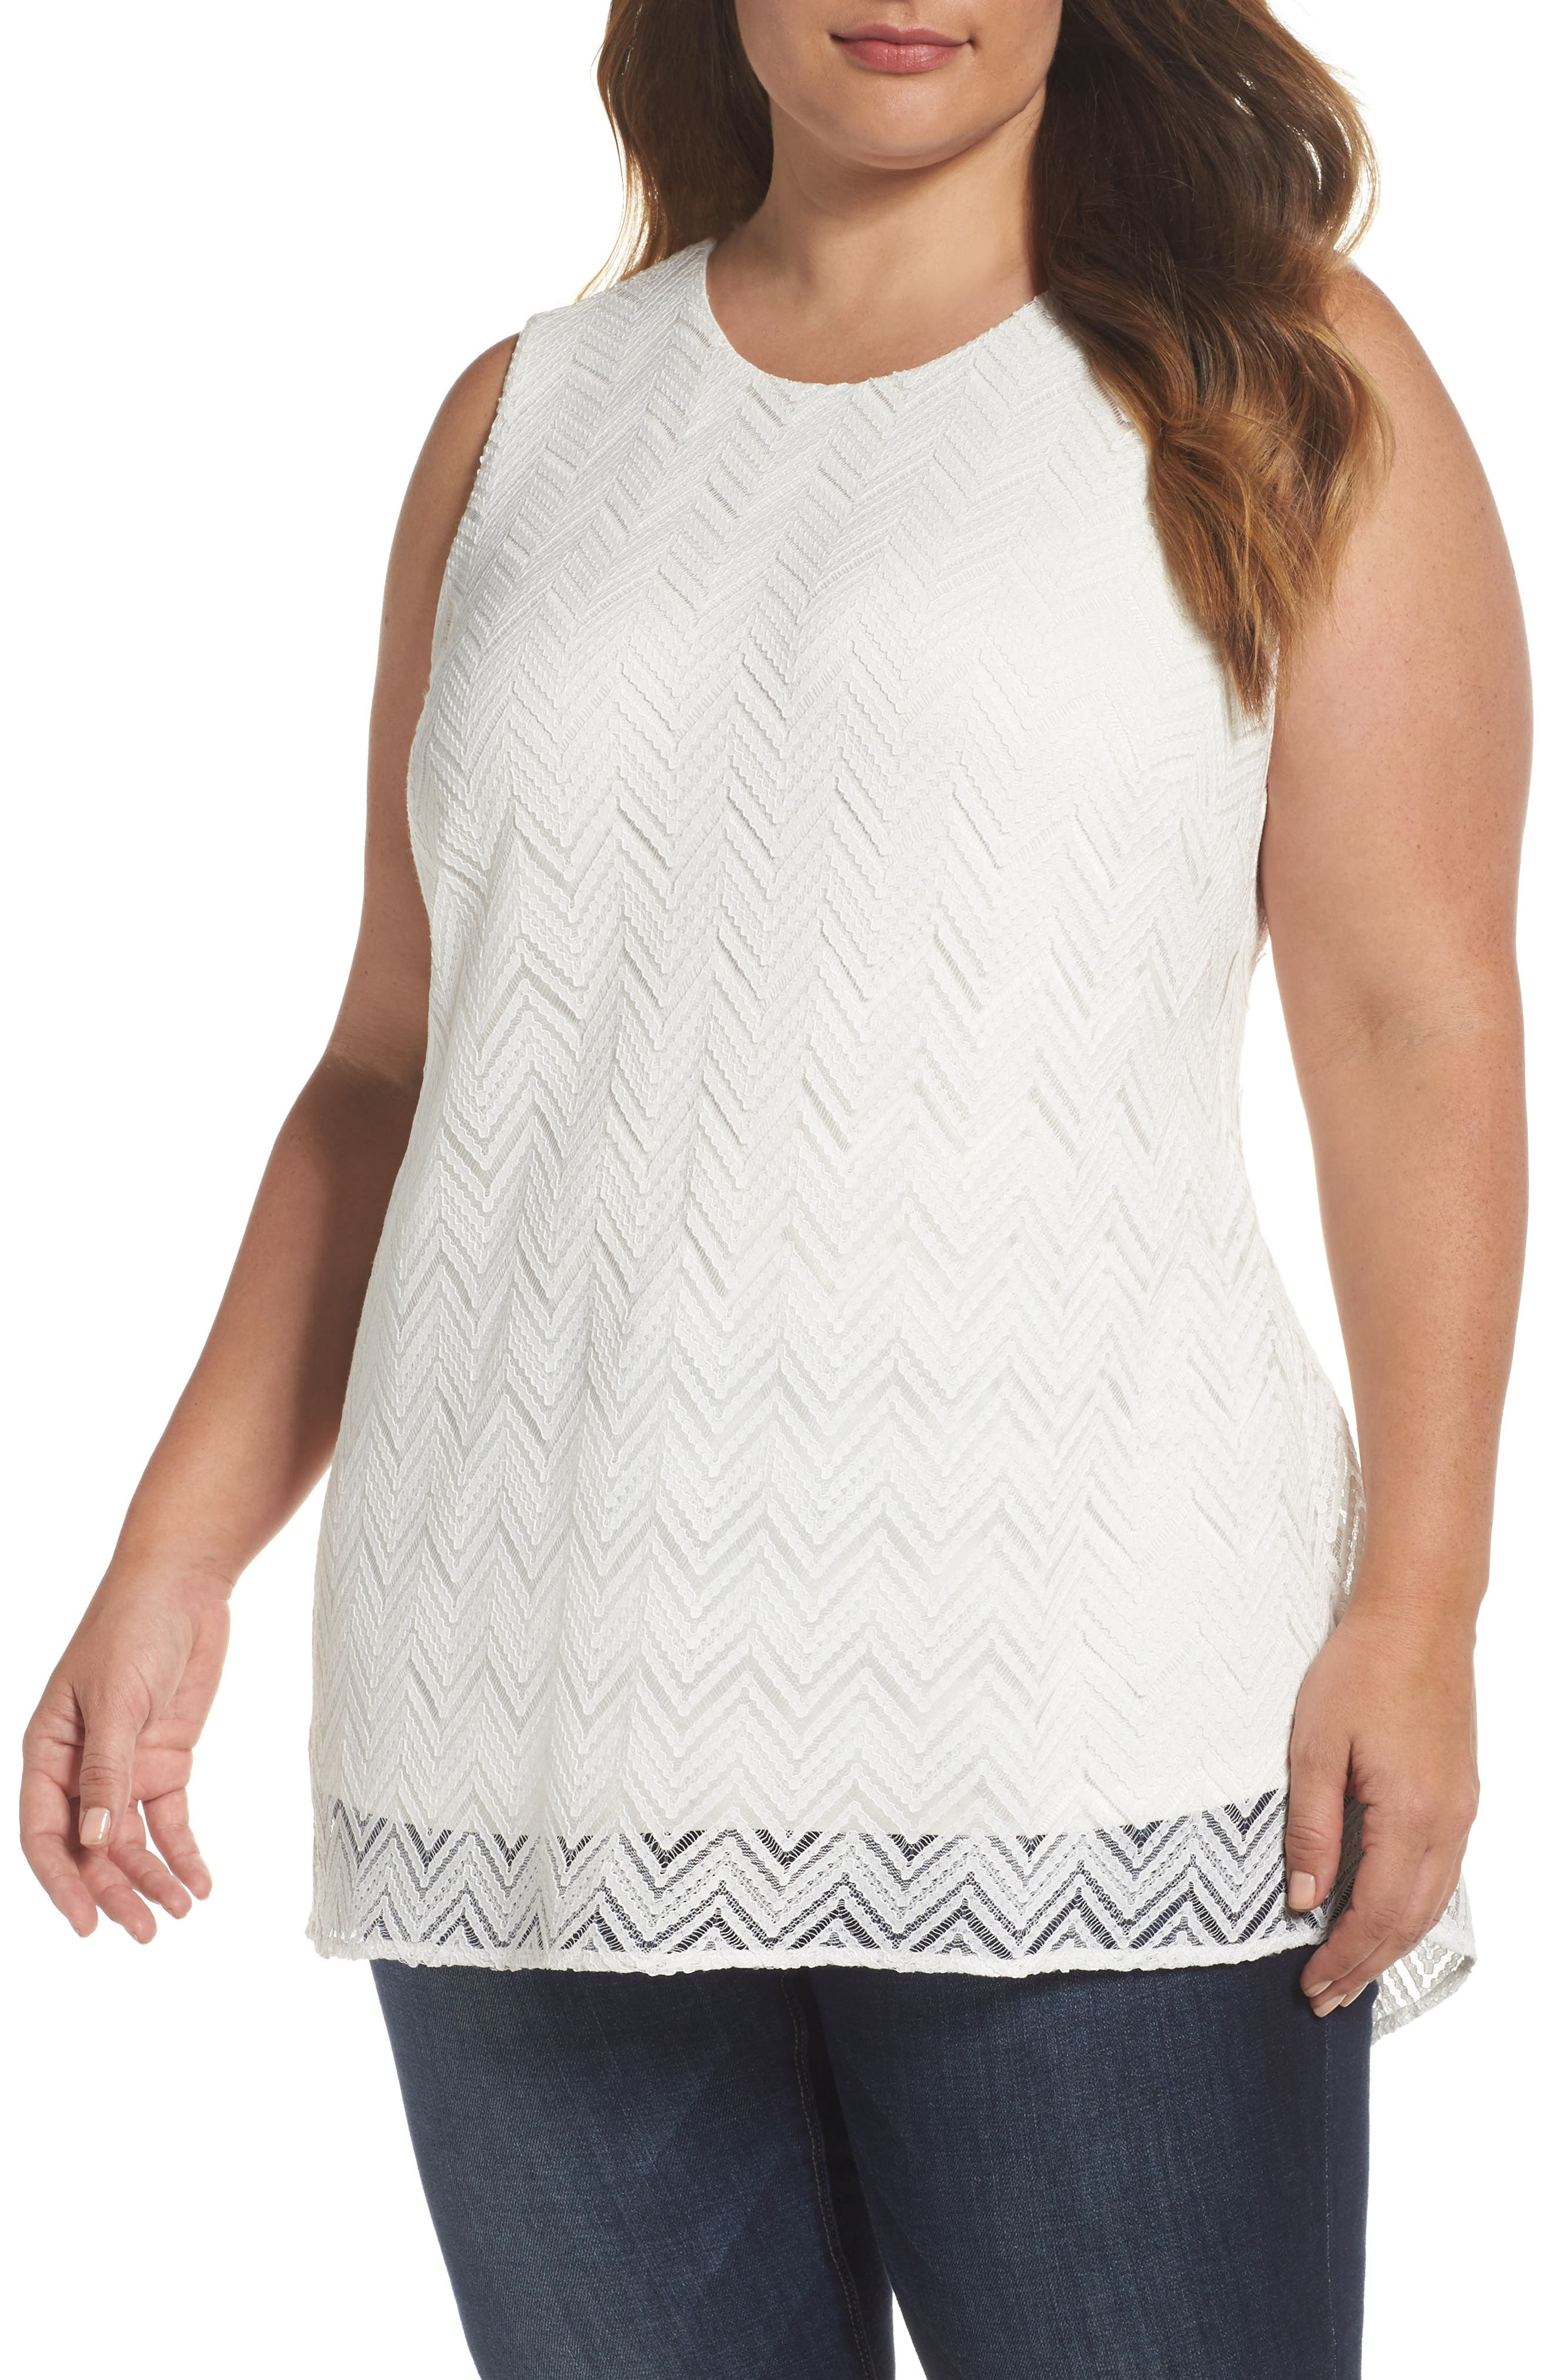 Vince Camuto Herringbone Lace Blouse (Plus Size)